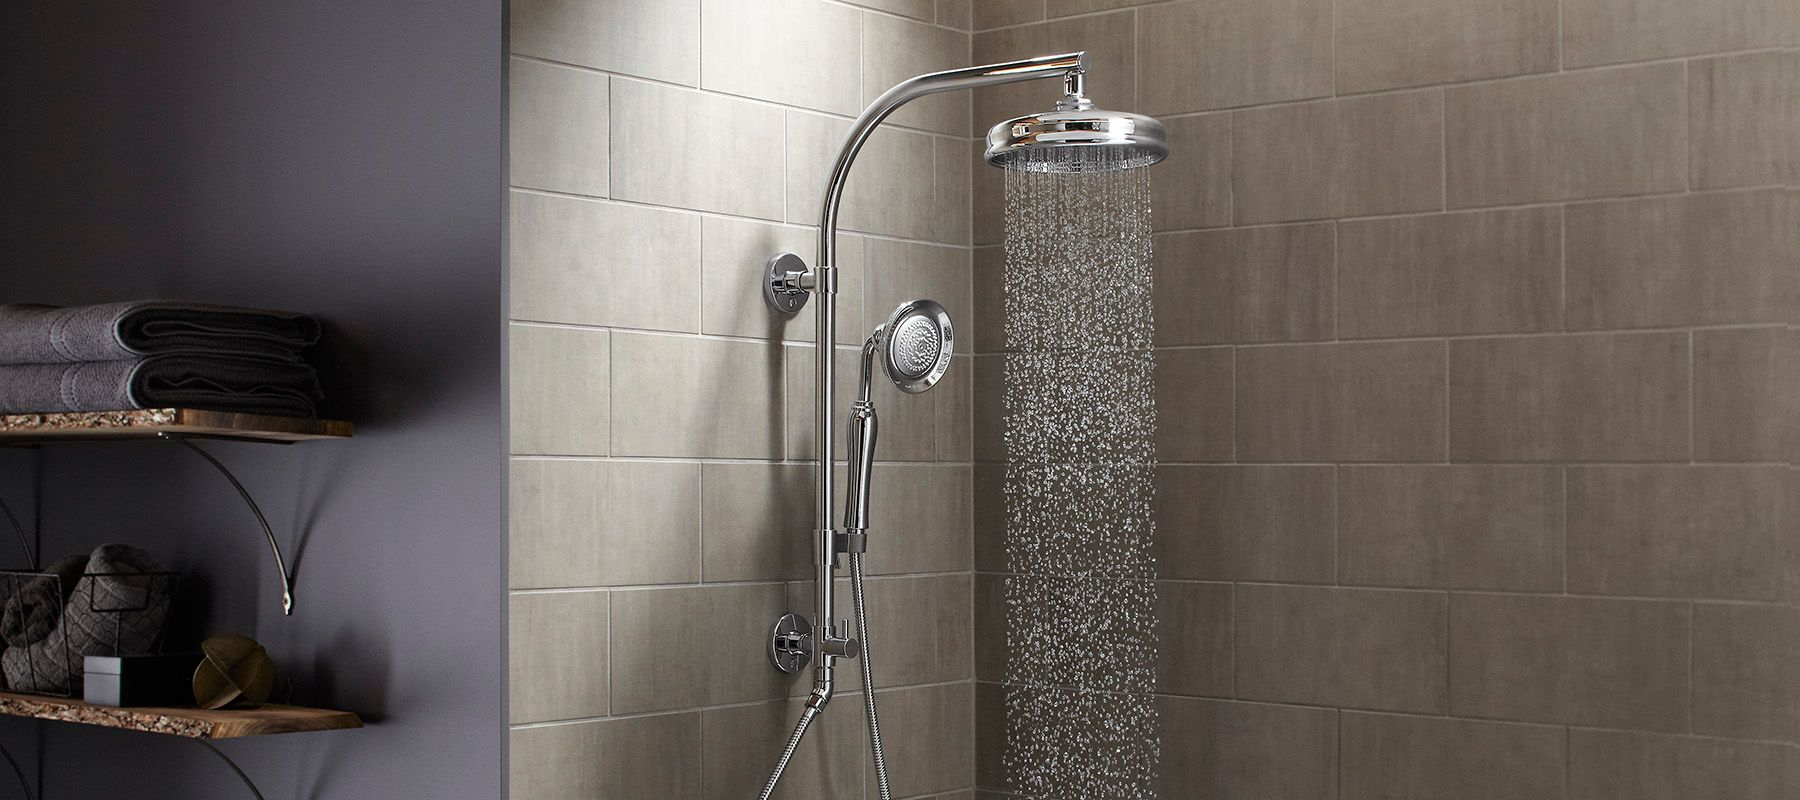 Can a Shower Count for Wudu'